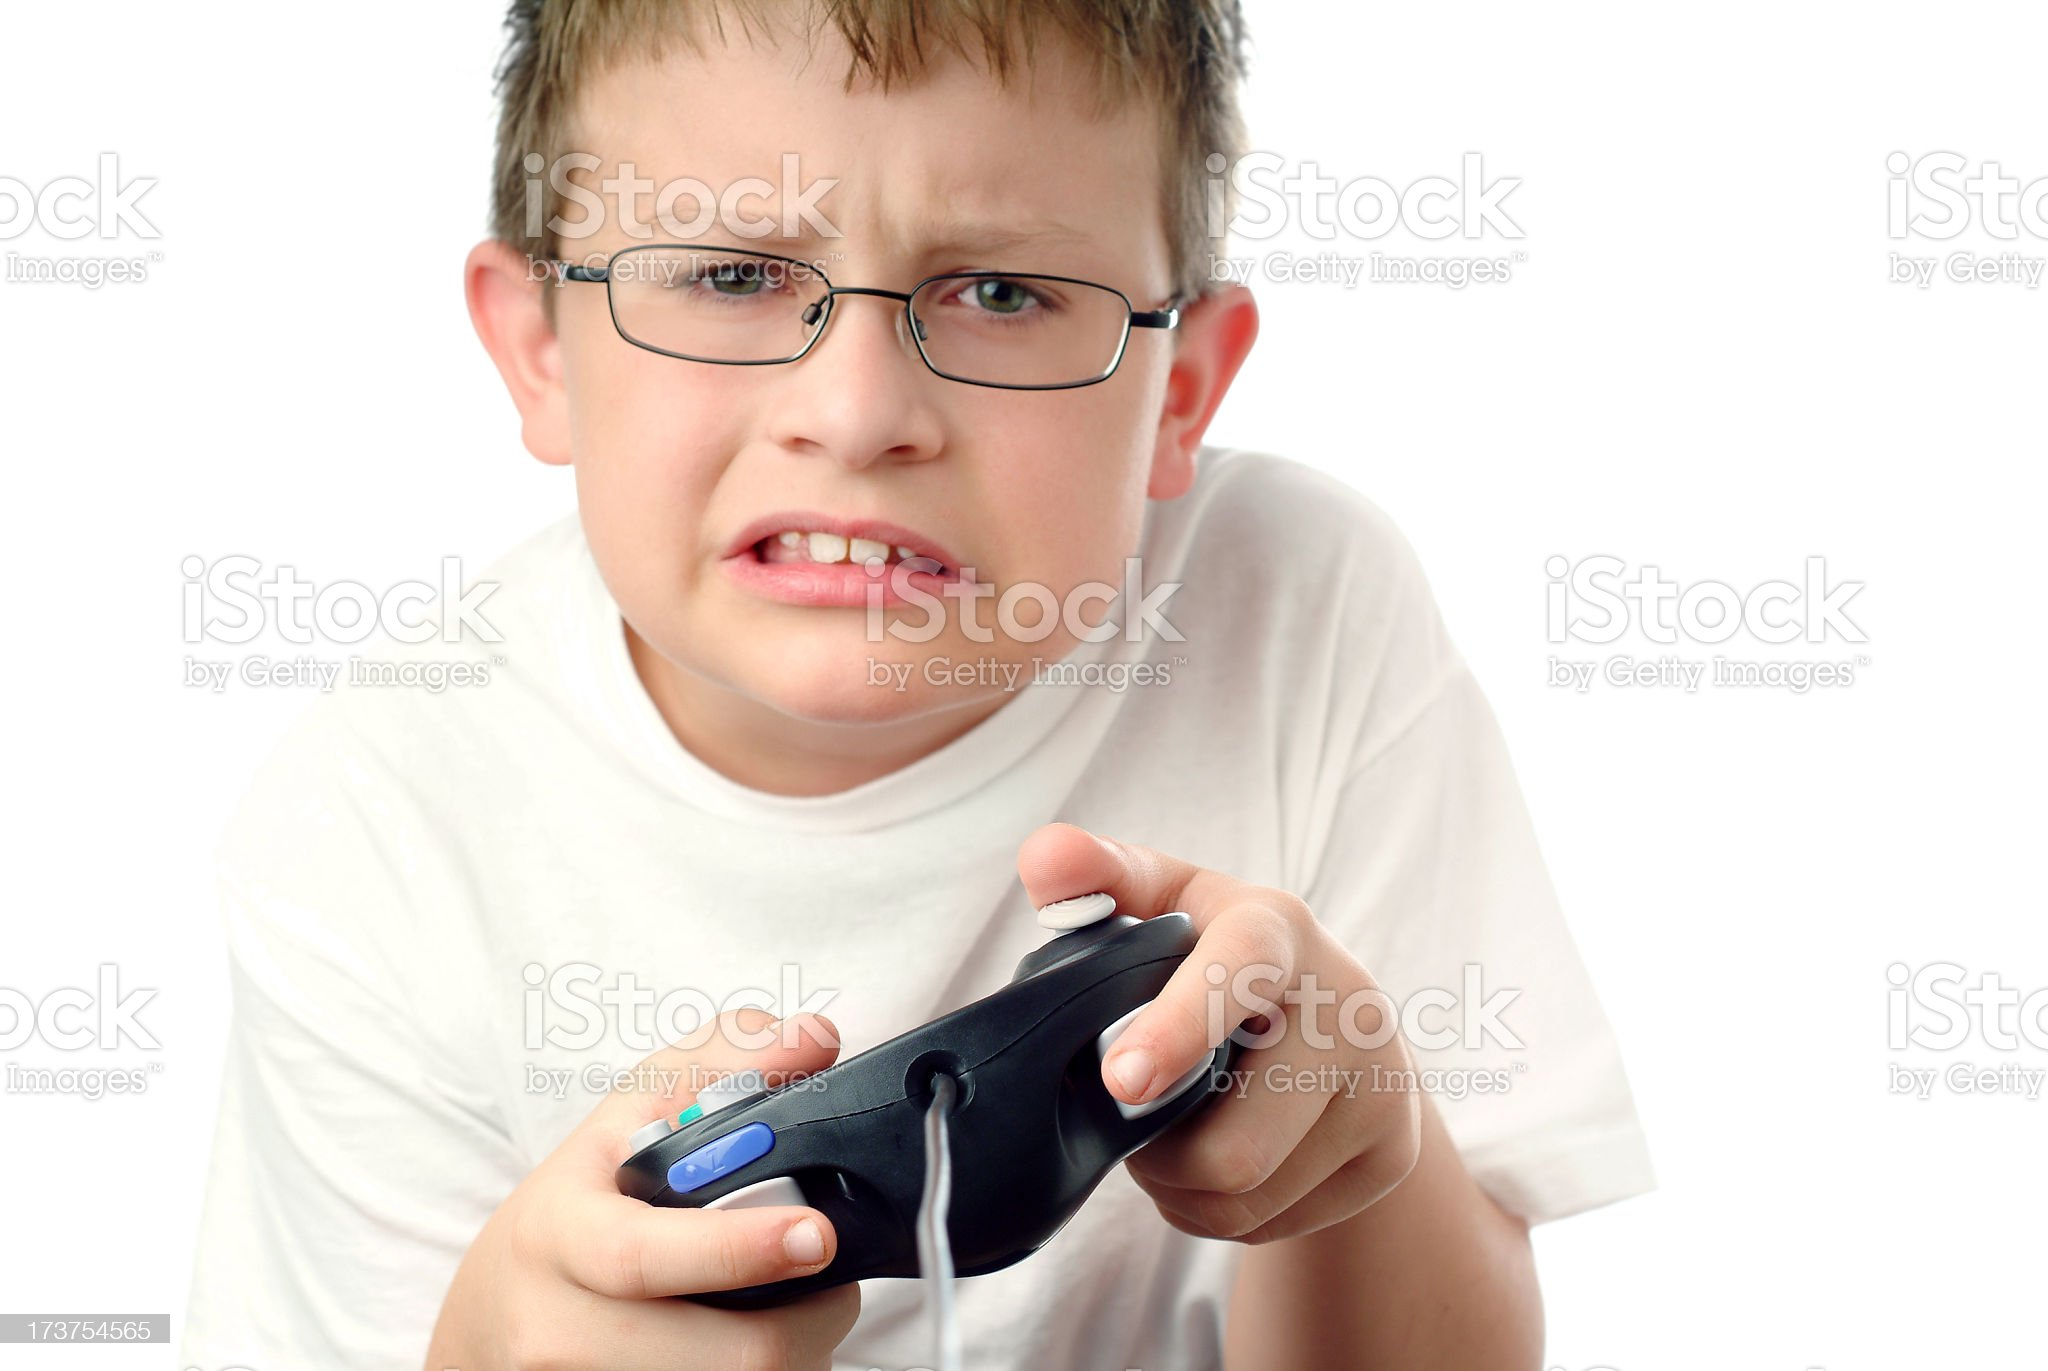 Frustrated Young Boy with Video Game Controller in his Hands royalty-free stock photo